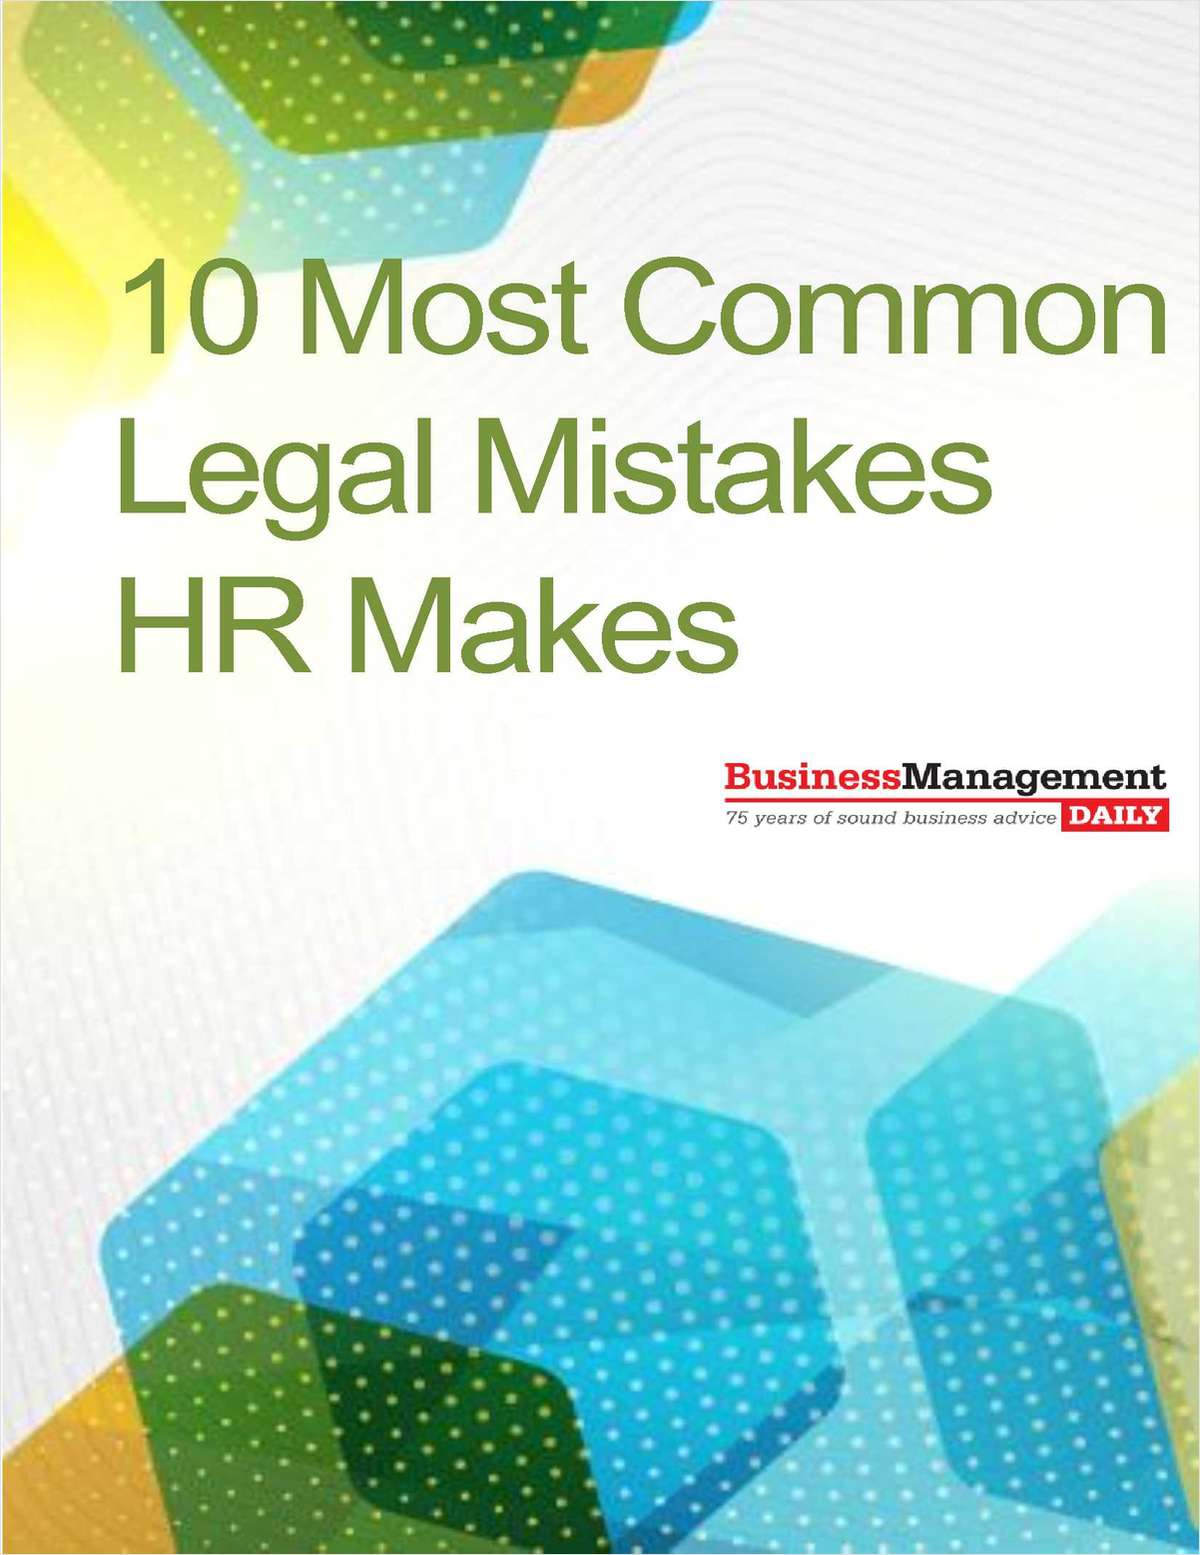 10 Most Common Legal Mistakes HR Makes